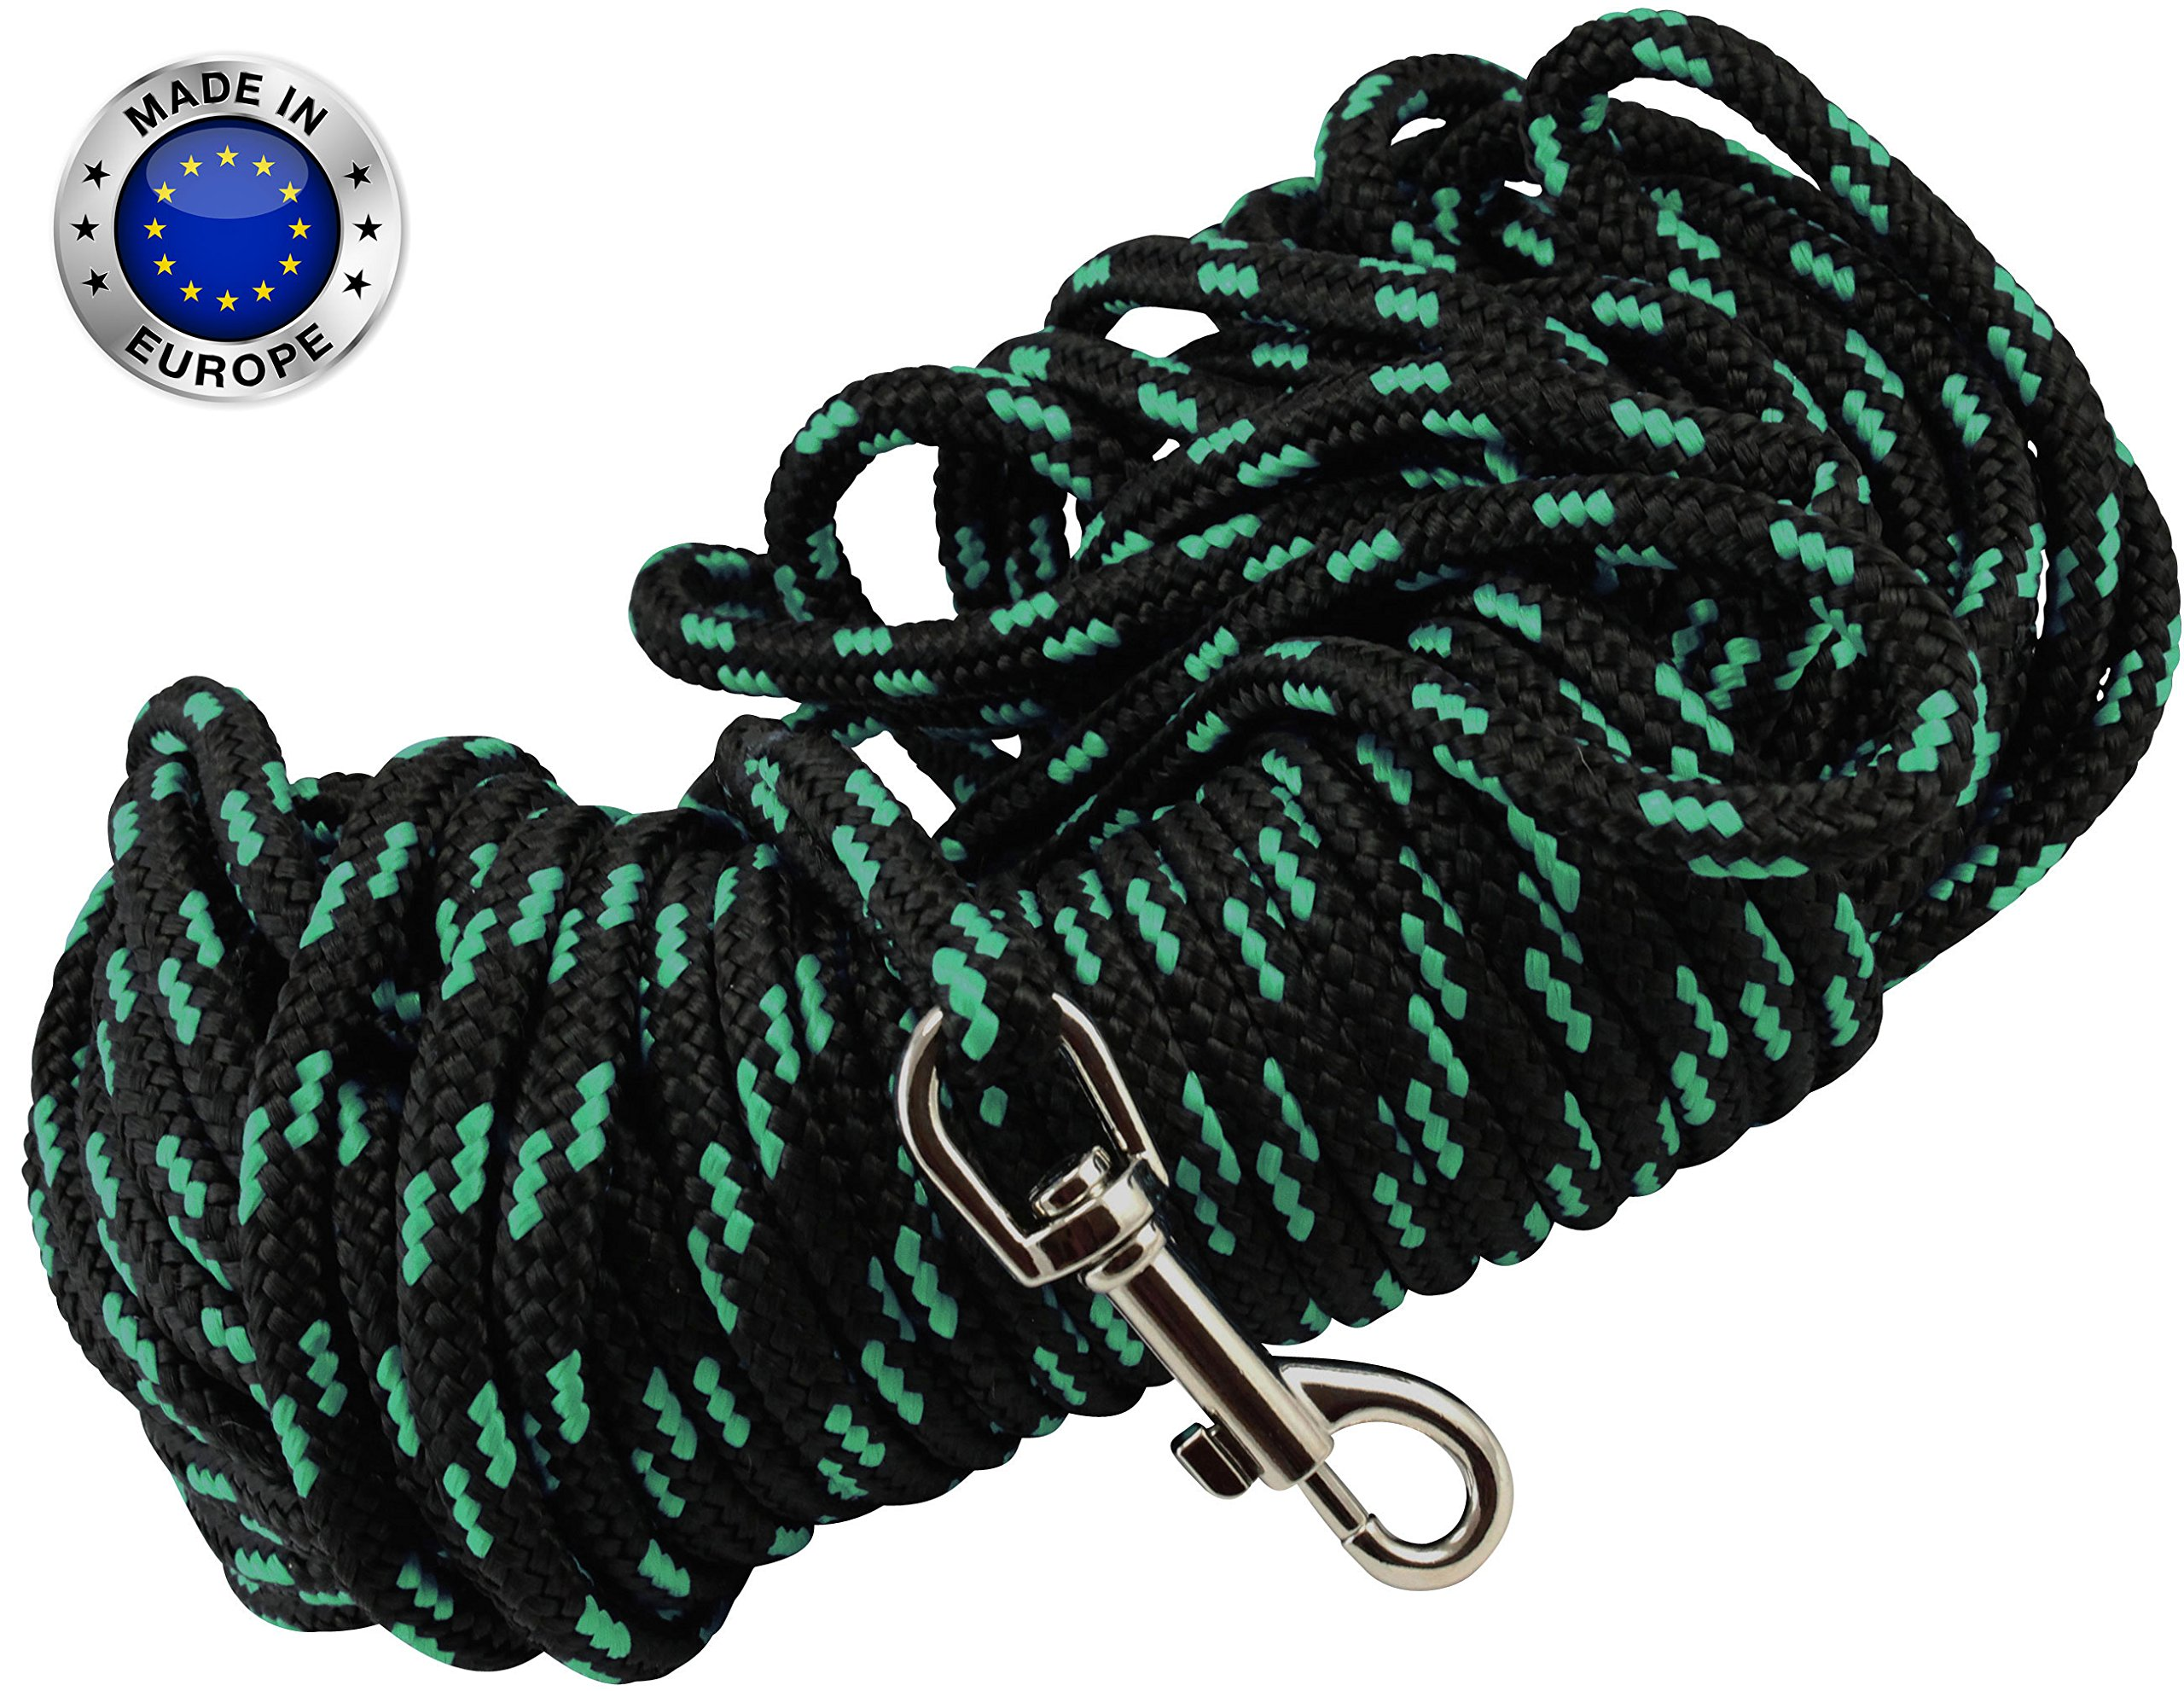 Braided Nylon Rope Tracking Dog Leash, Black with Green 15-Feet/30-Feet/45-Feet/60-Feet Training Lead for Small and Medium Dogs (60ft, Medium - Diam 3/8'' (8mm))